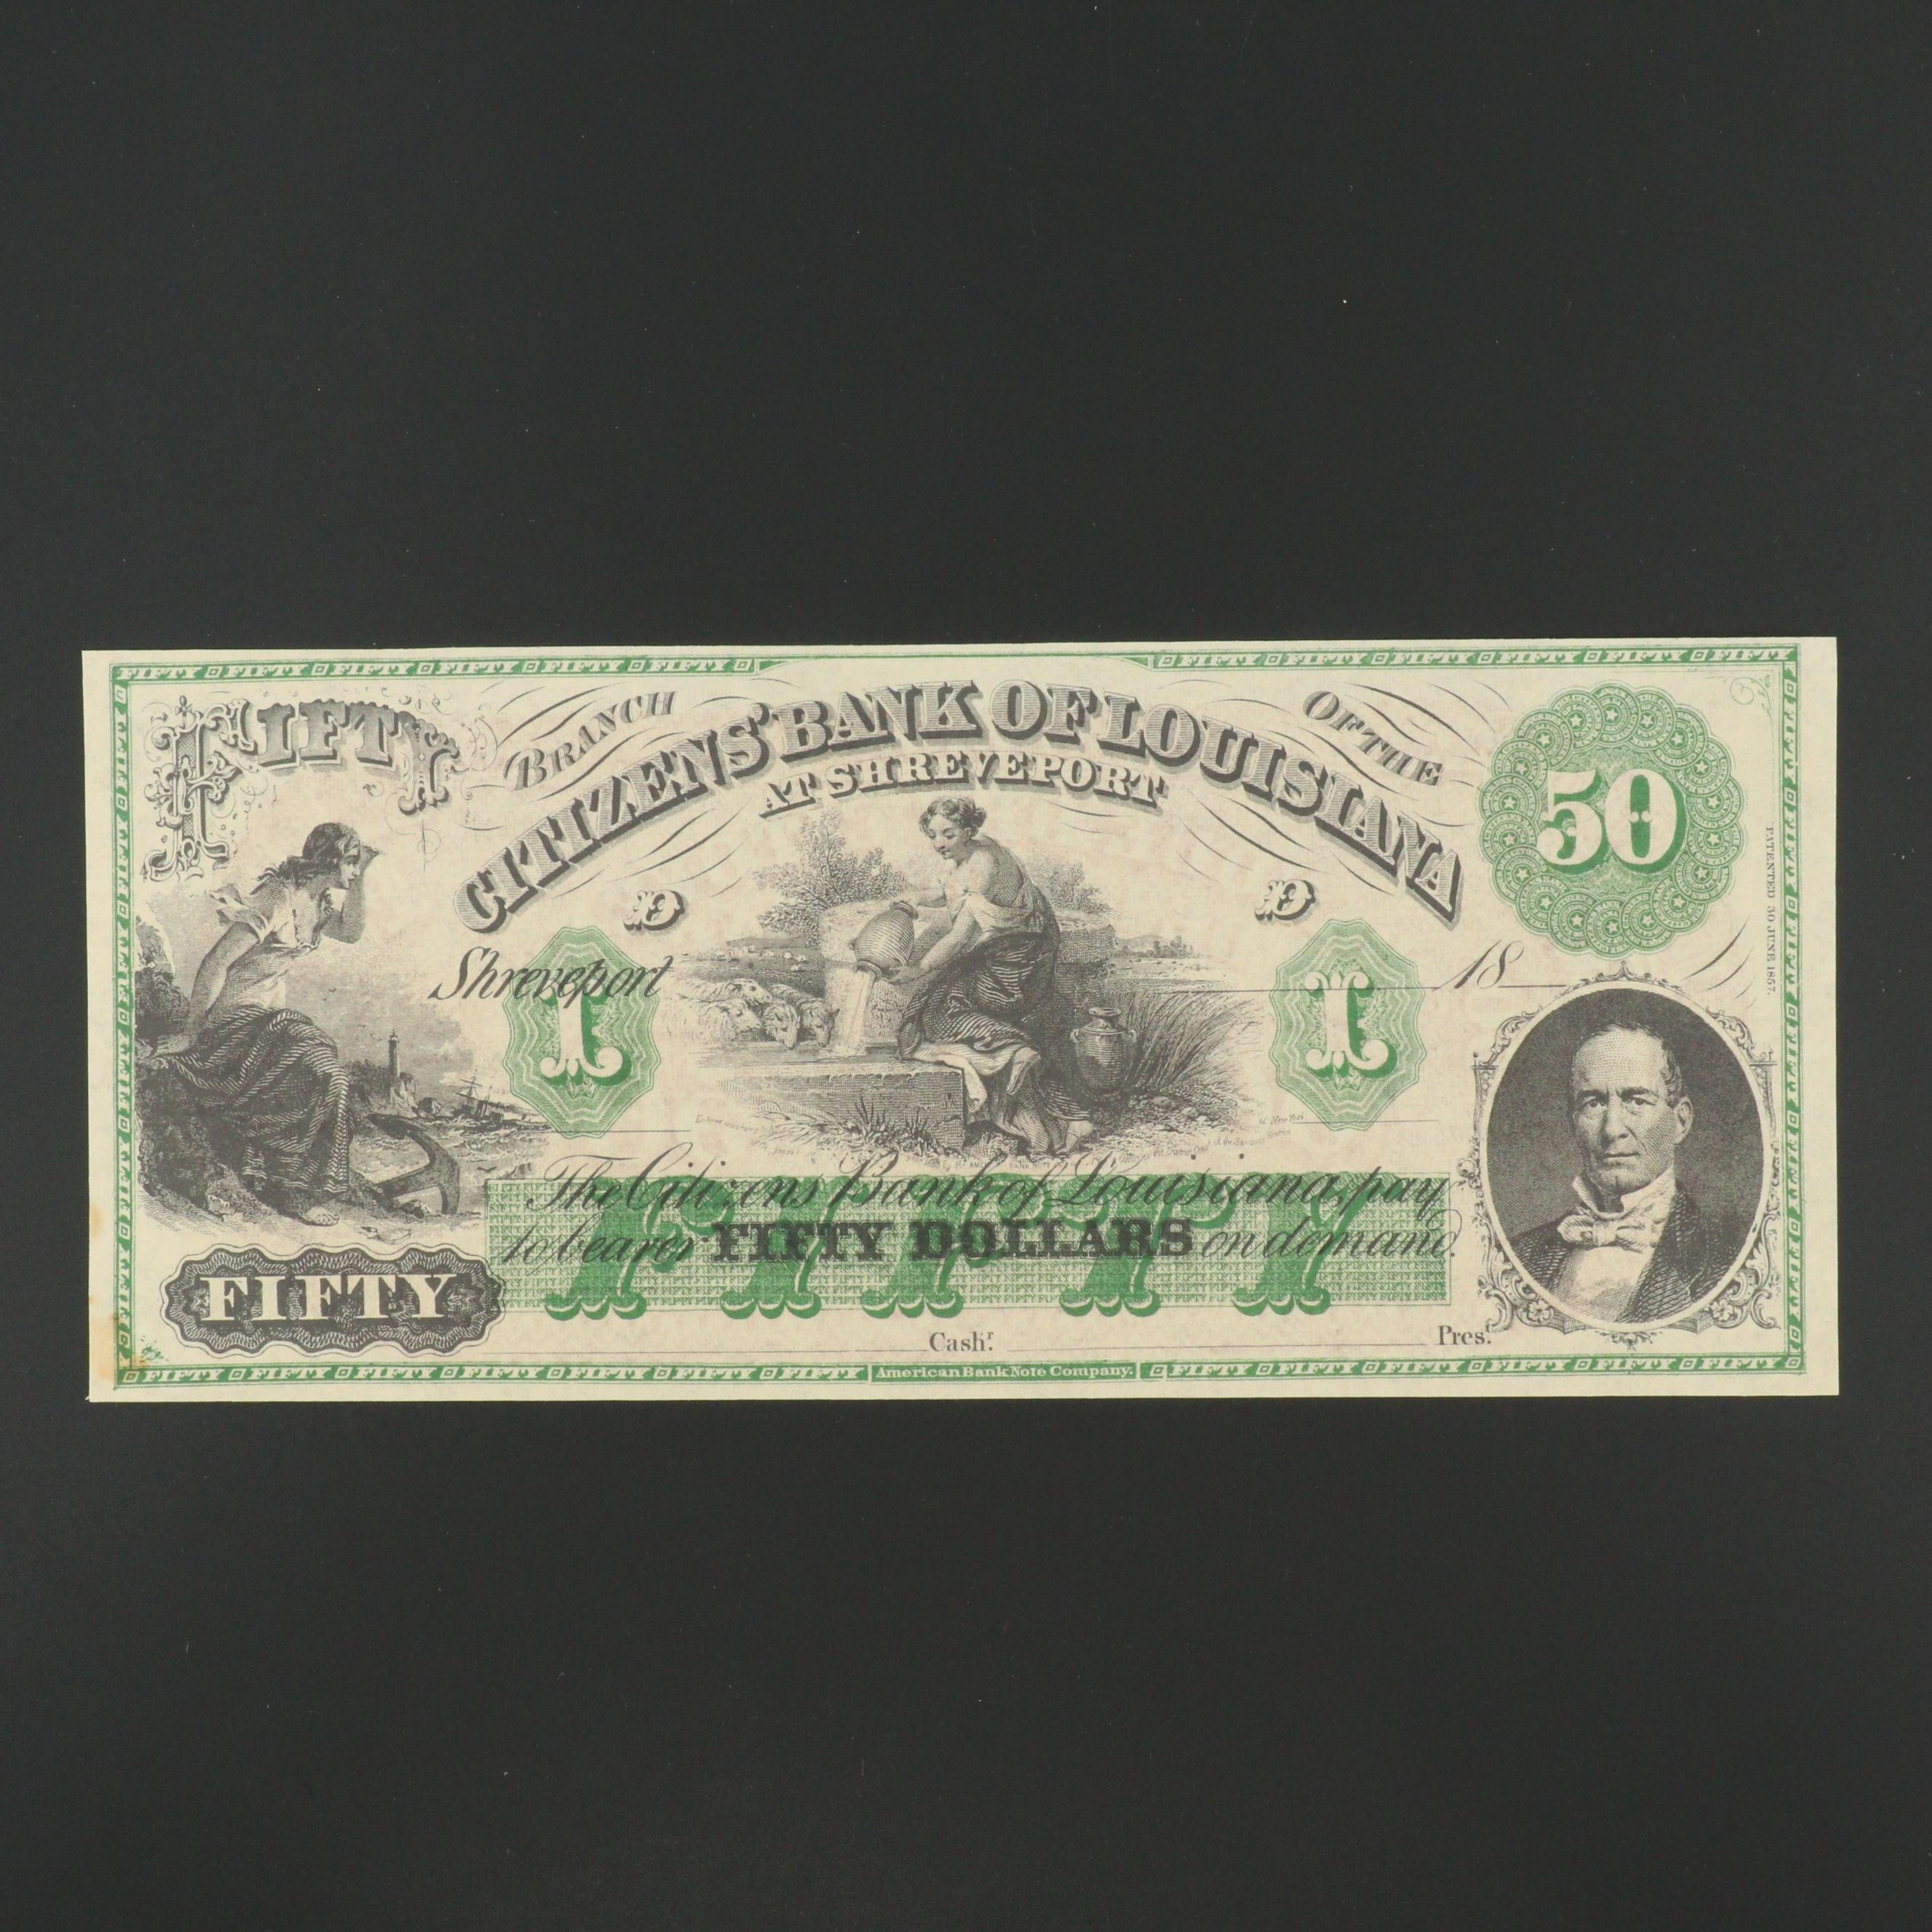 19th Century Obsolete $50 Bank Note from Citizen's Bank of Louisiana